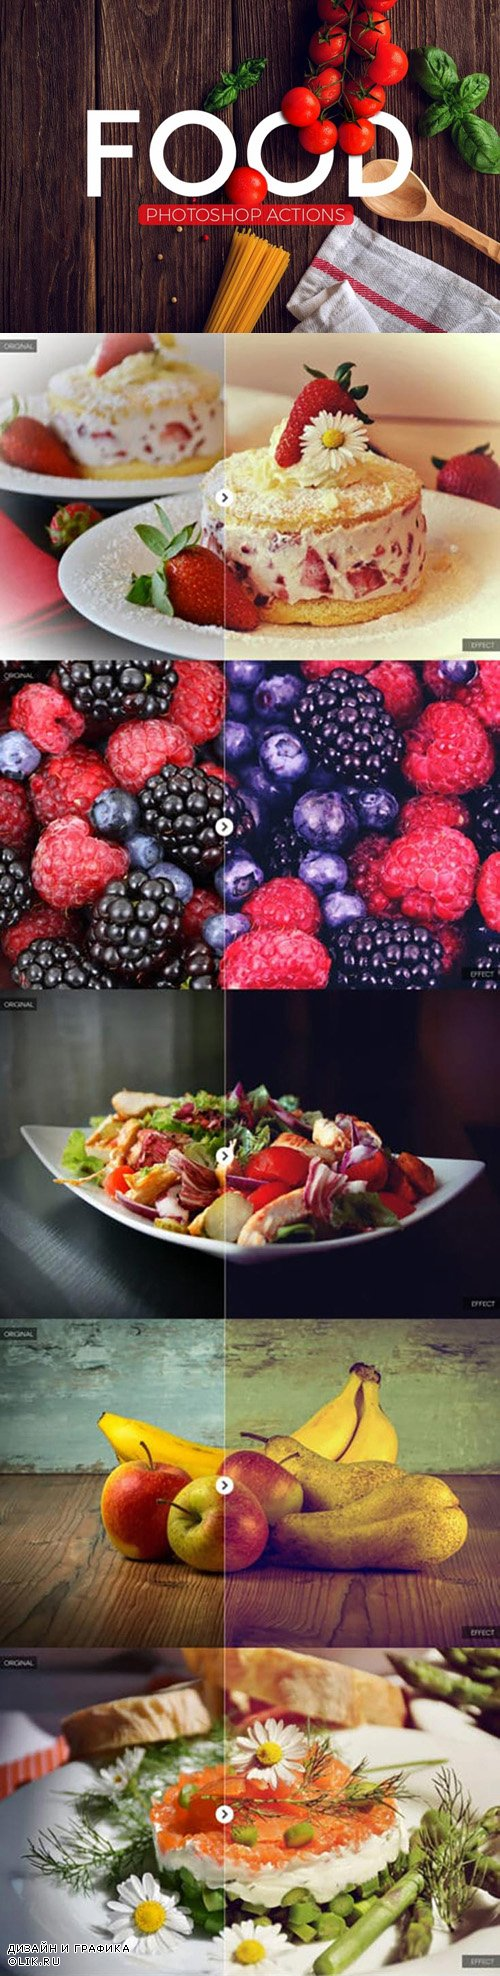 Photoshop Actions for Food Photography Vol.3